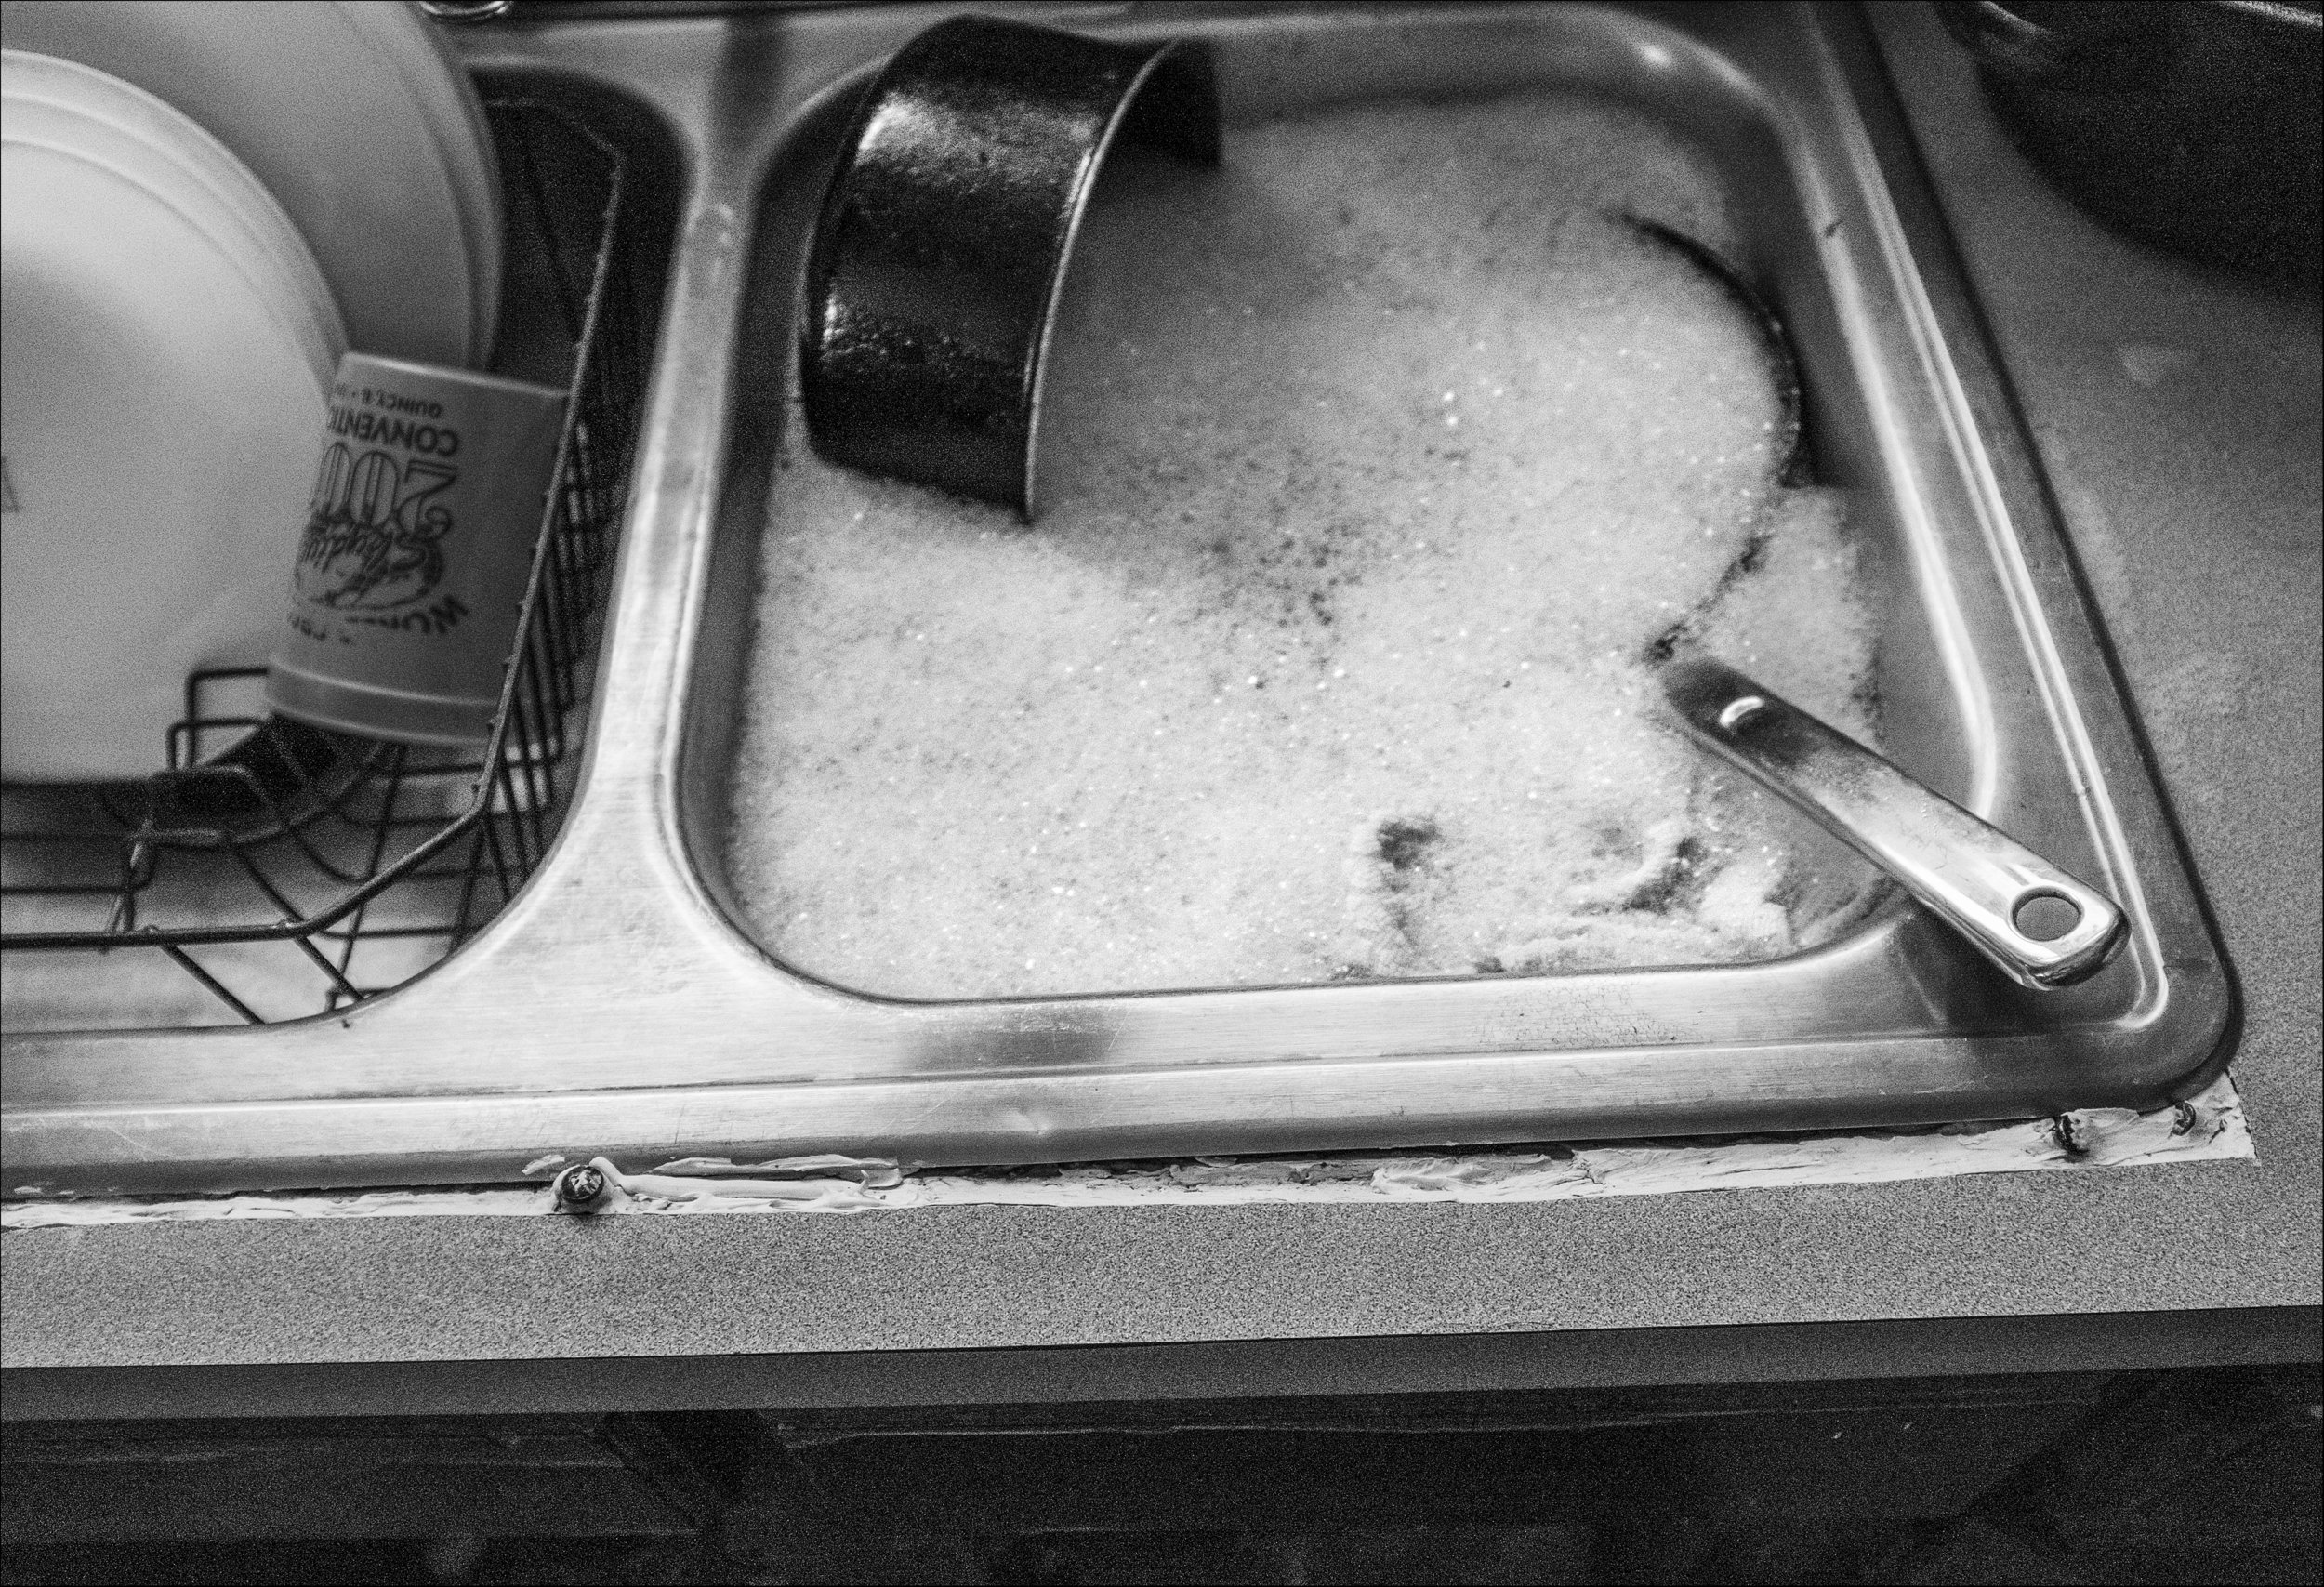 February 2019:  The kitchen sink is literally separated from the countertop contributing to the number of rodents in the apartment.